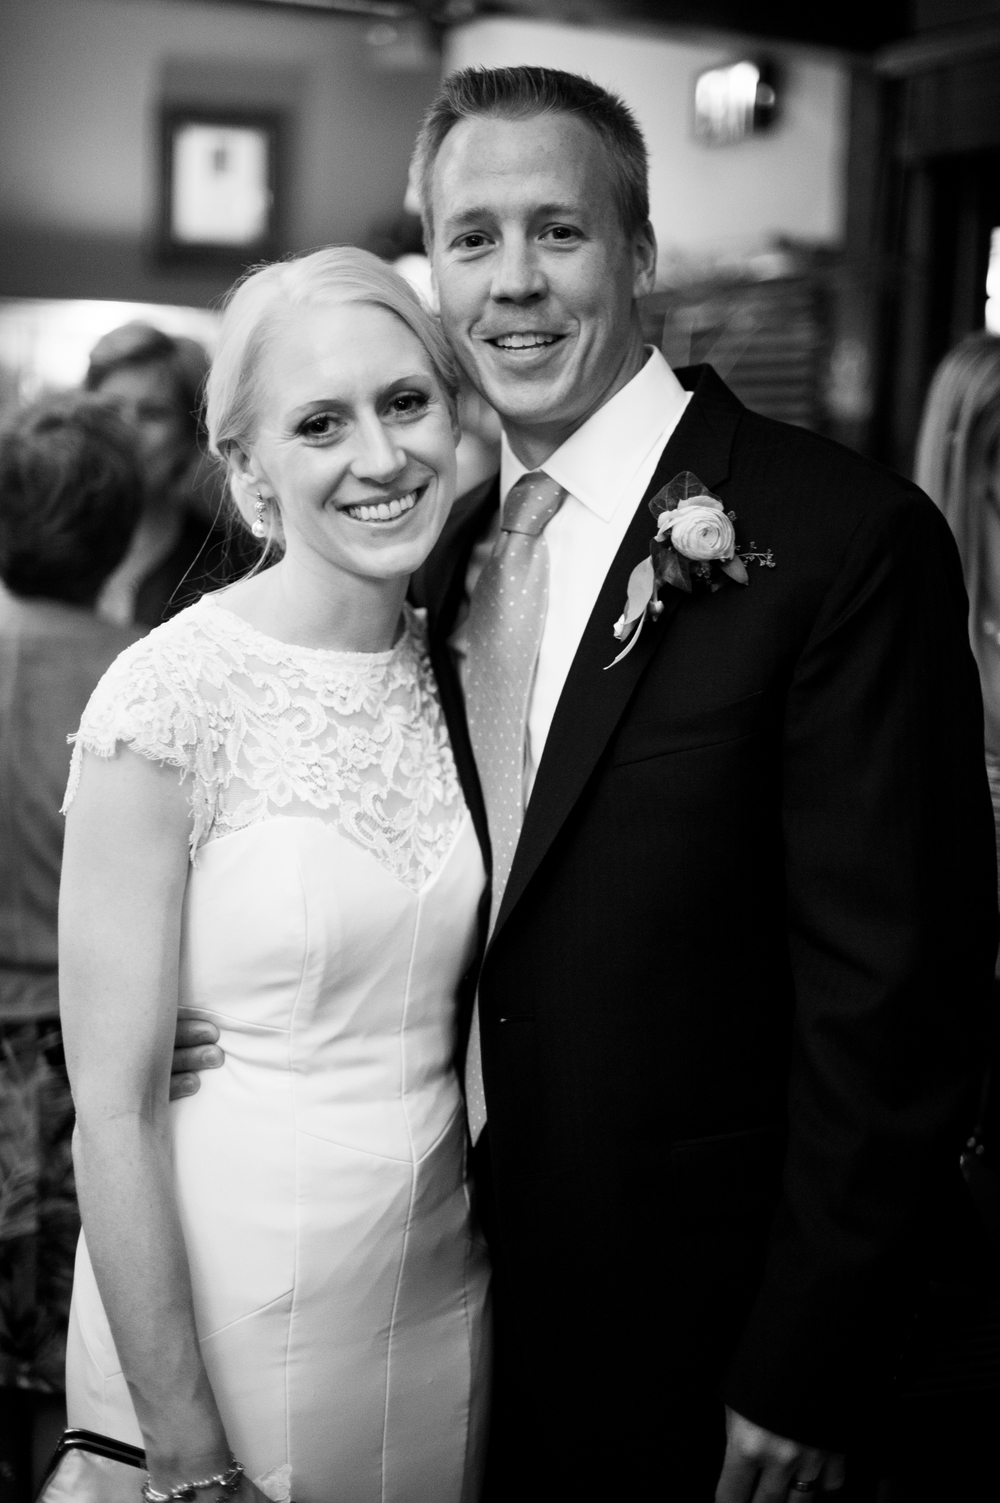 Annie and Bill Wedding-896.jpg